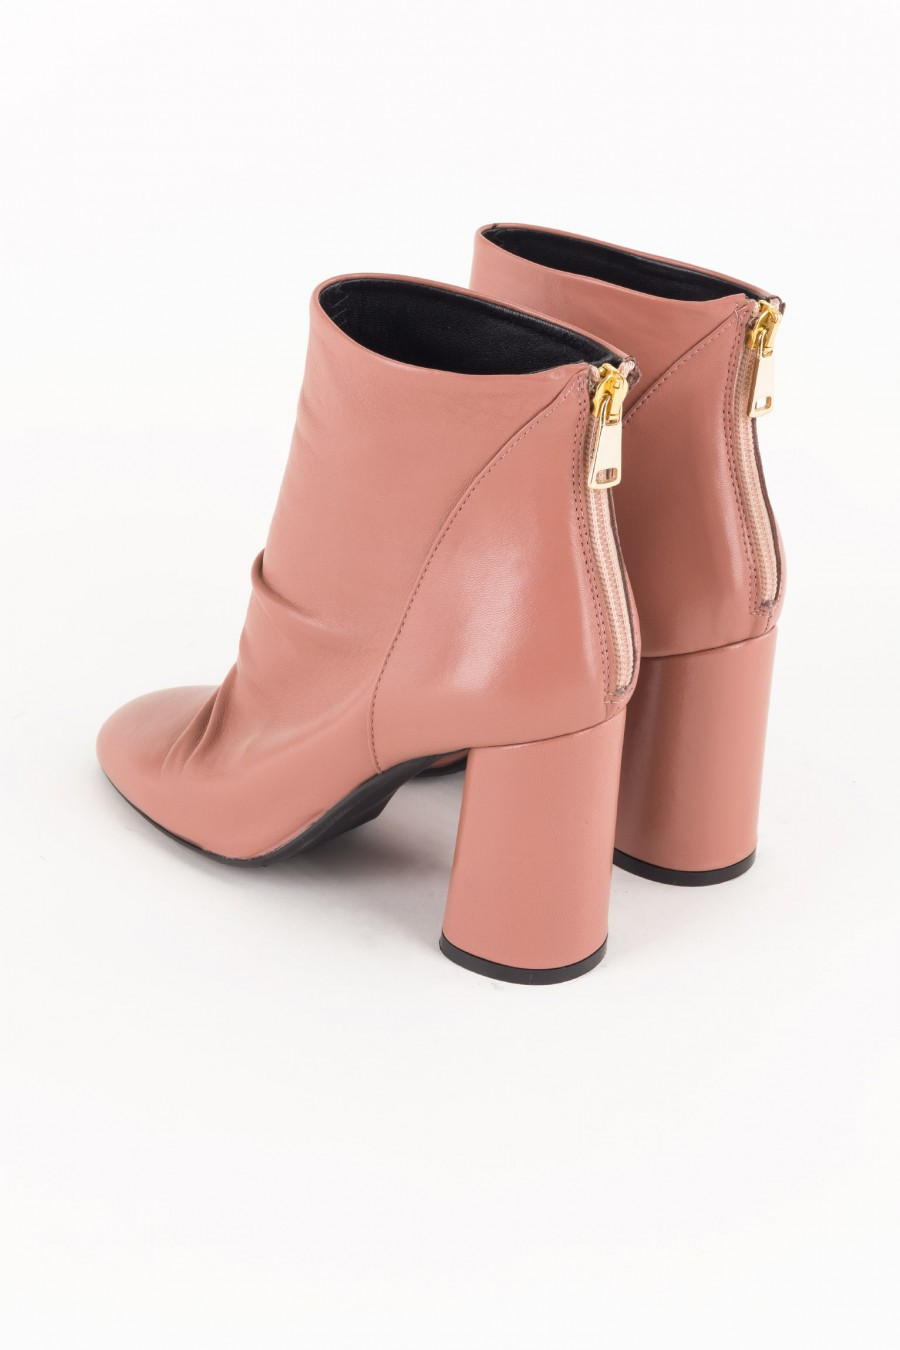 Pink boots with rounded heels